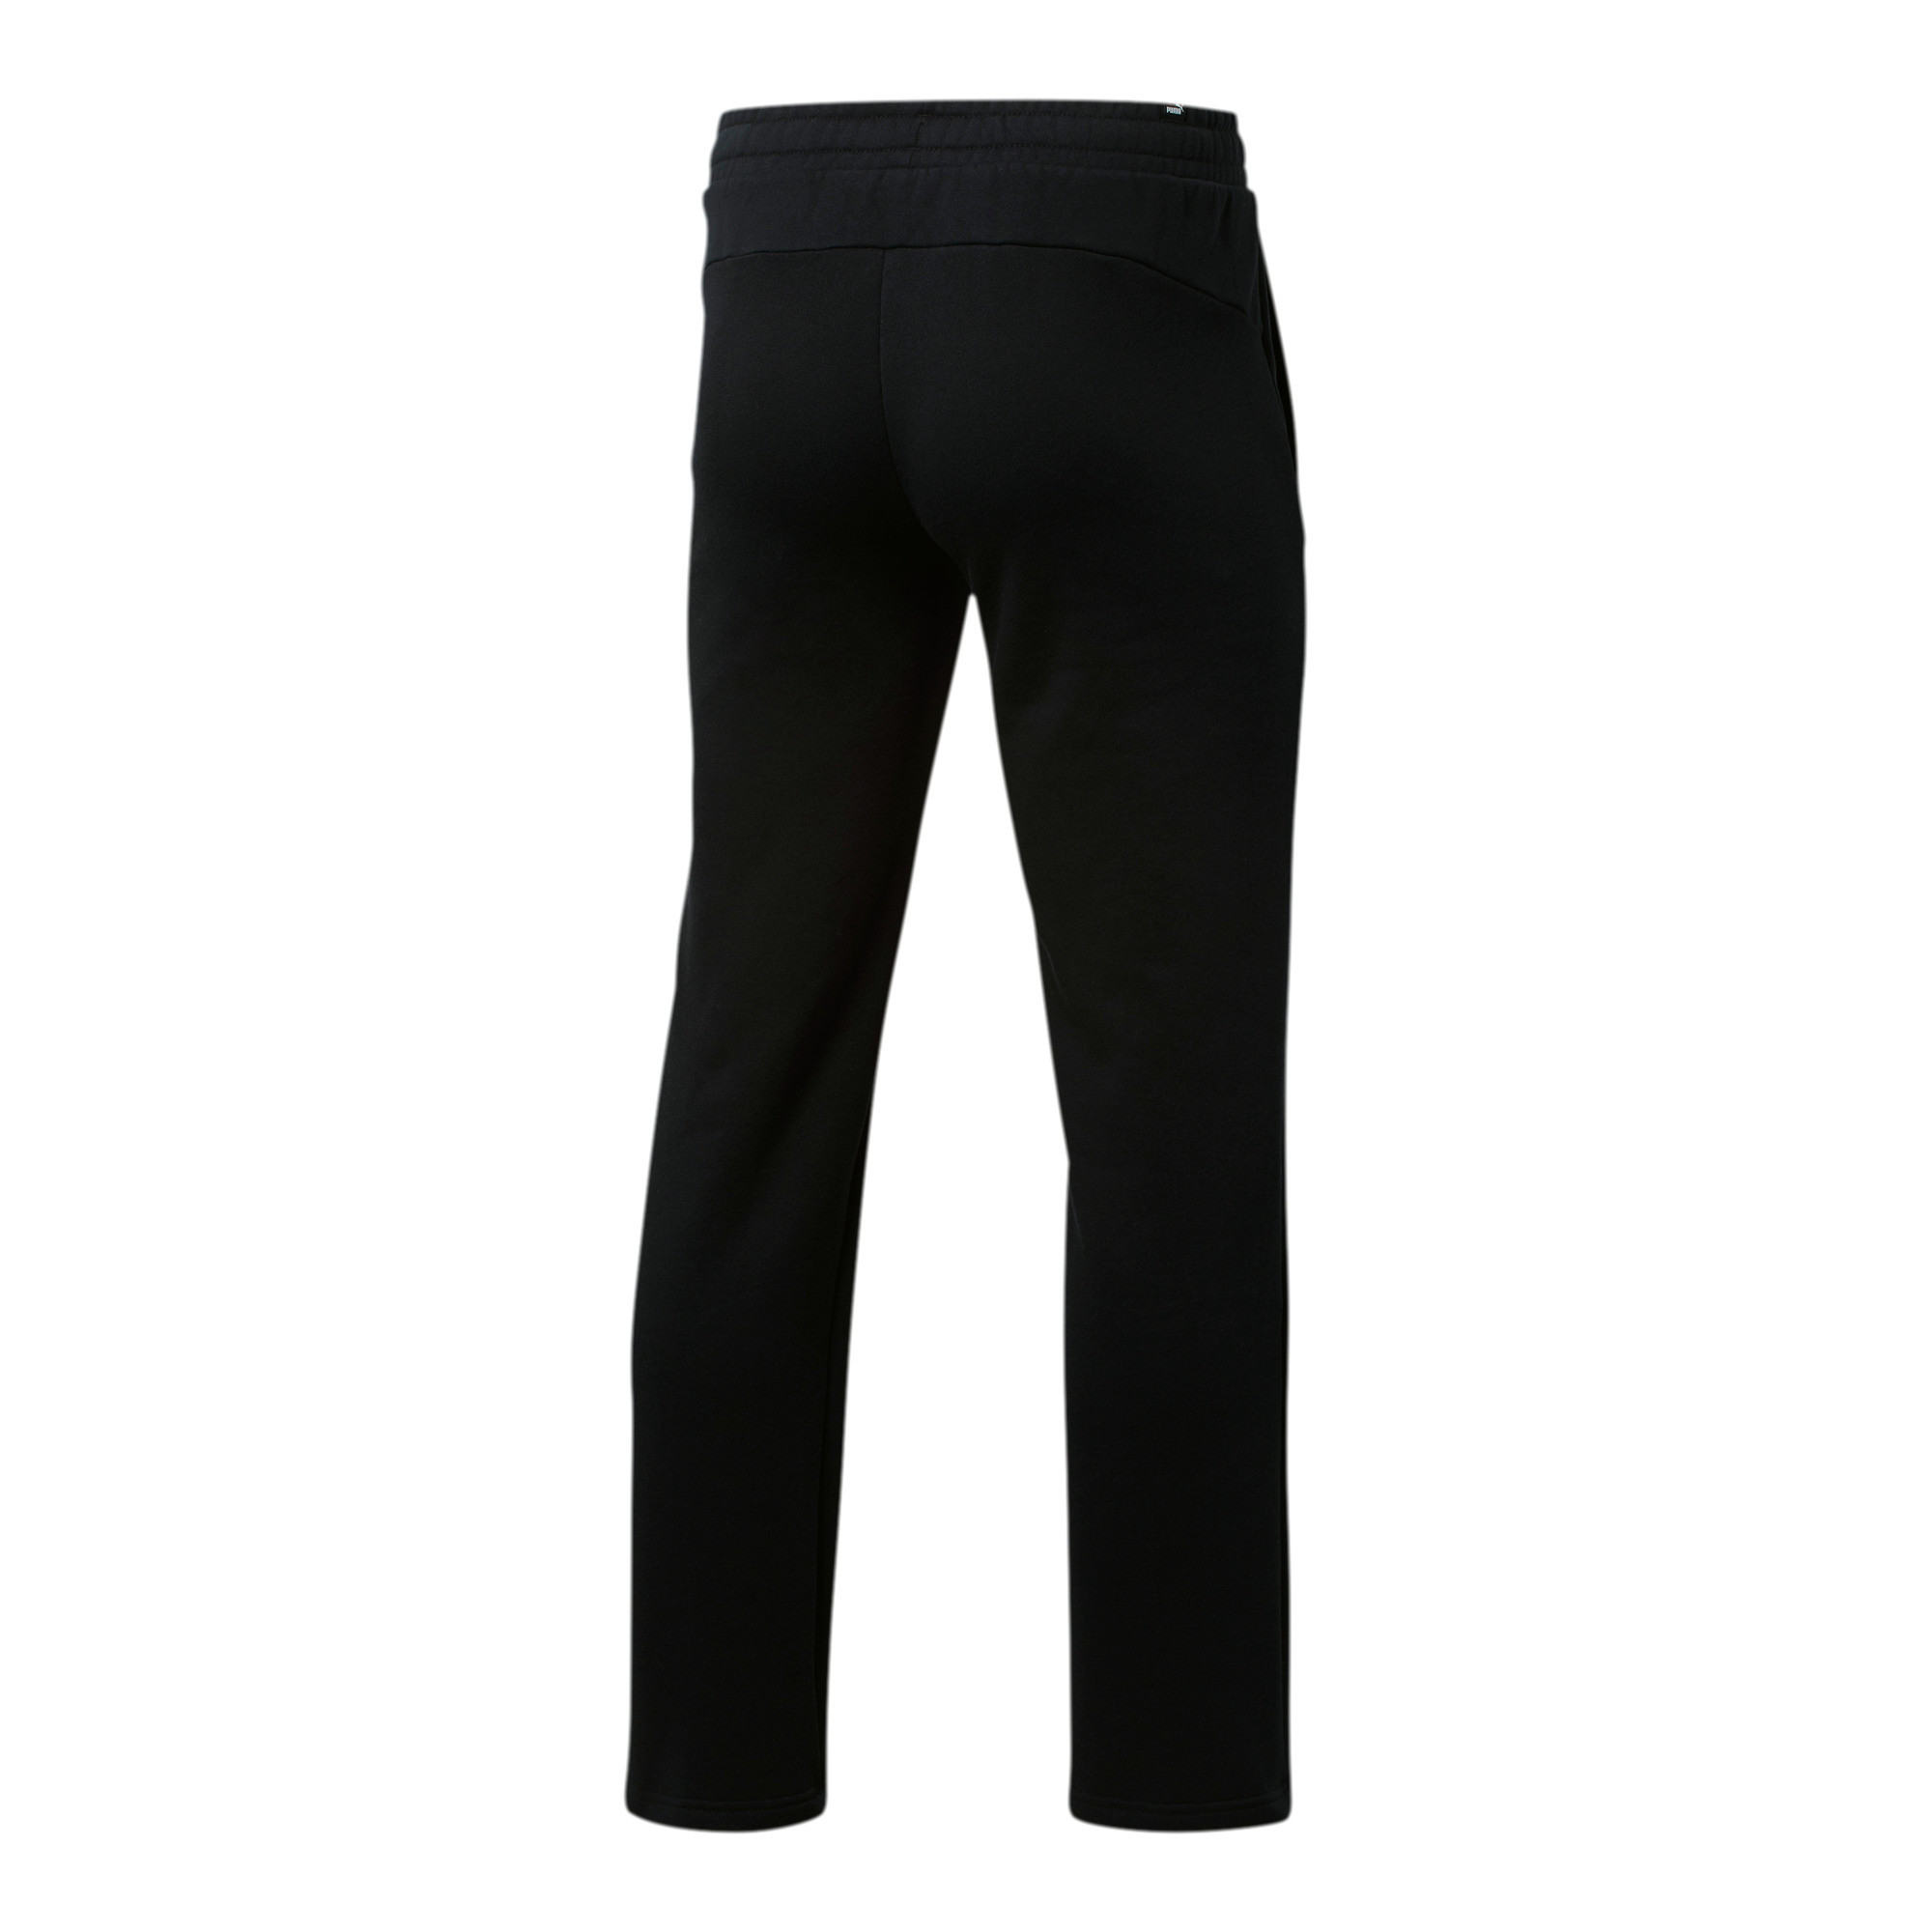 PUMA-Essentials-Men-039-s-Fleece-Pants-Men-Knitted-Pants-Basics thumbnail 13